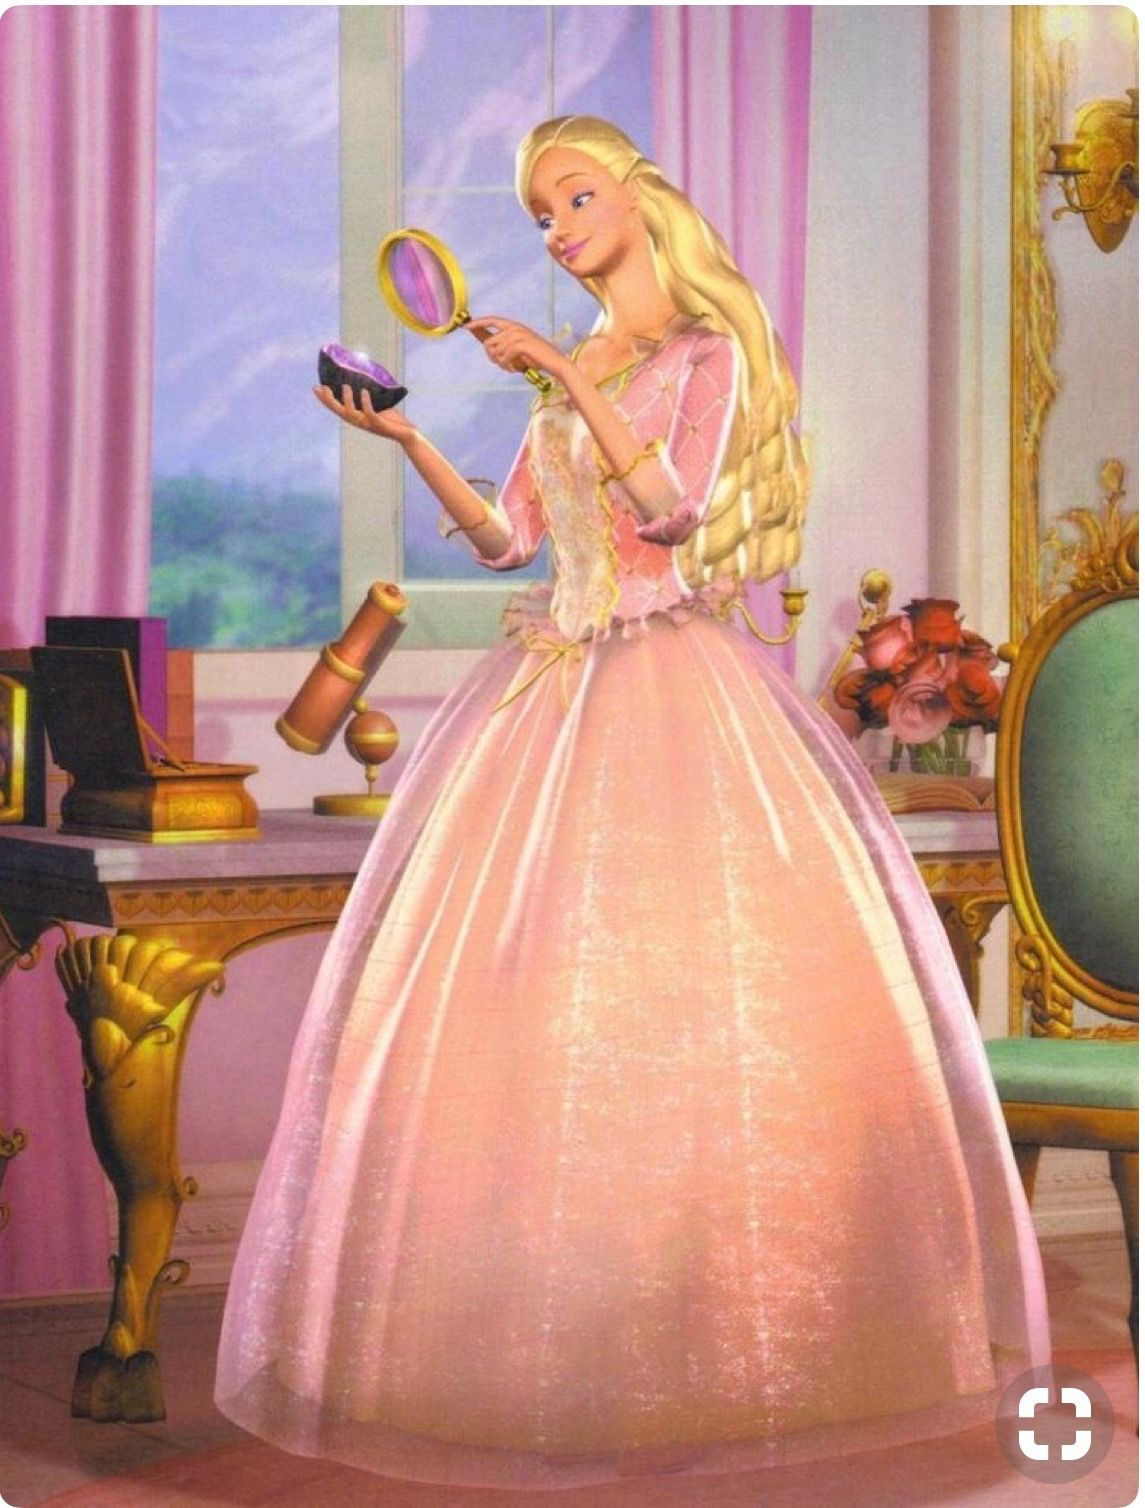 Pin By Jill Evers On Barbie Princess Collection Barbie Movies